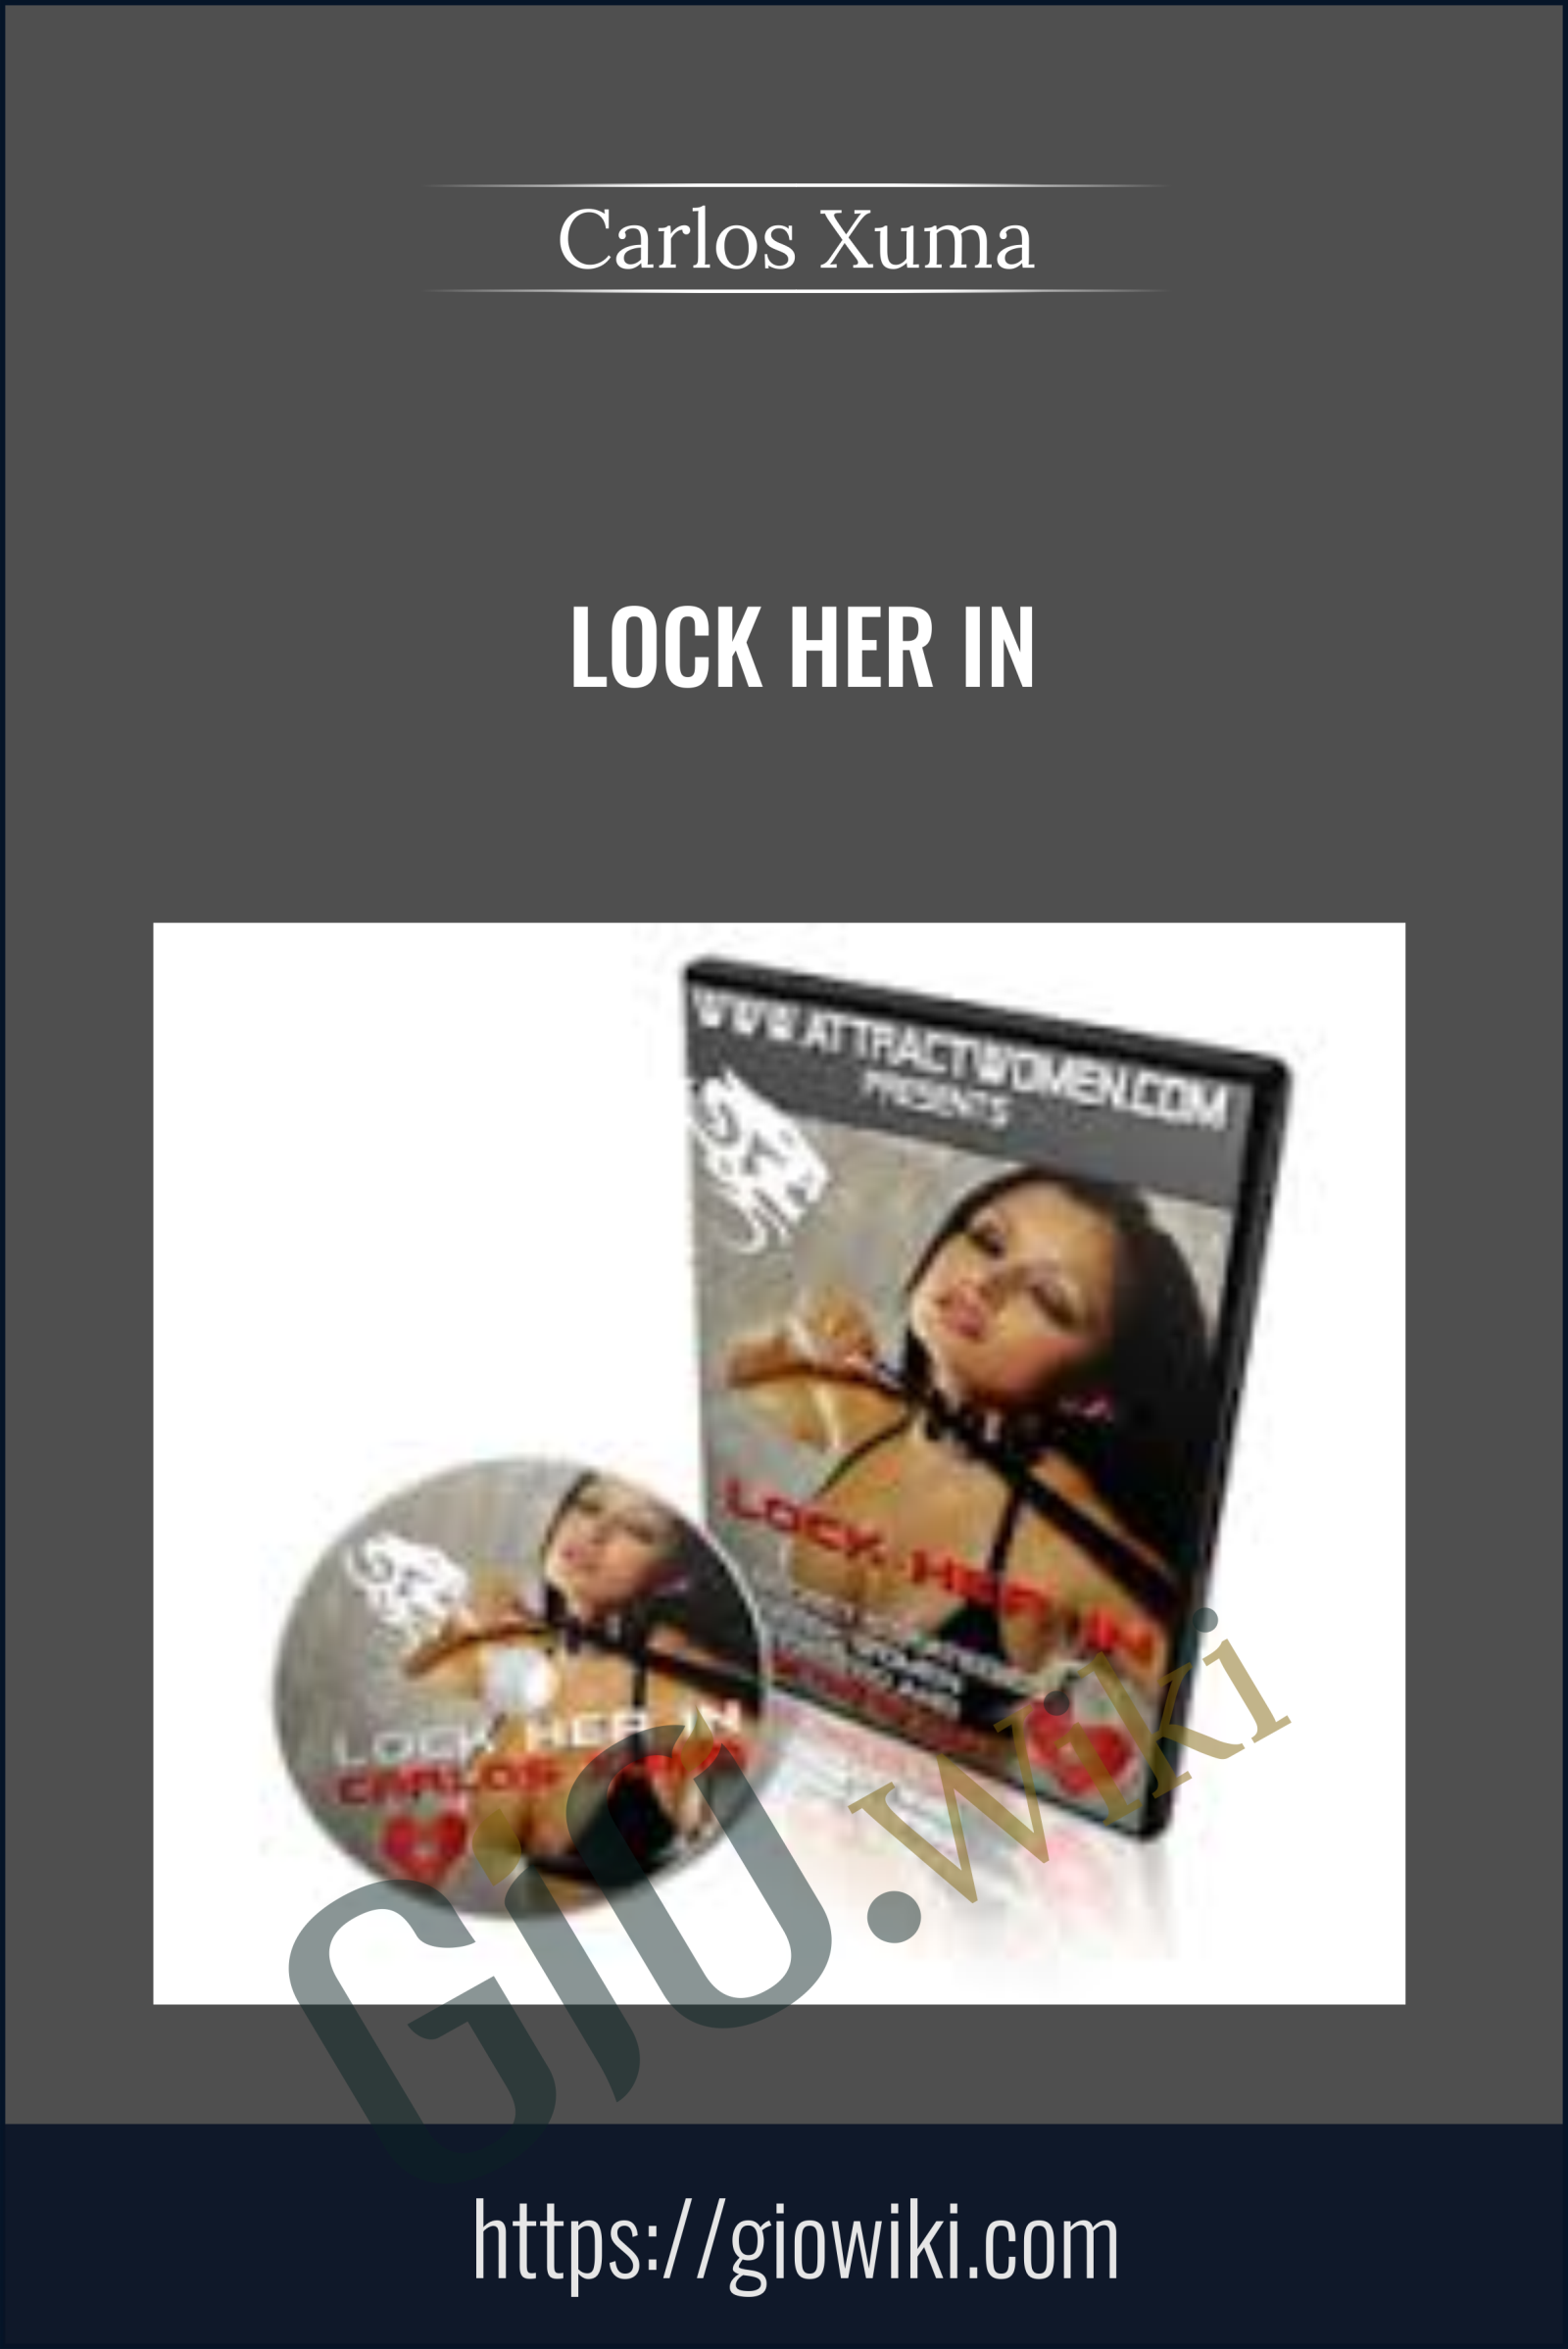 Lock Her In - Carlos Xuma